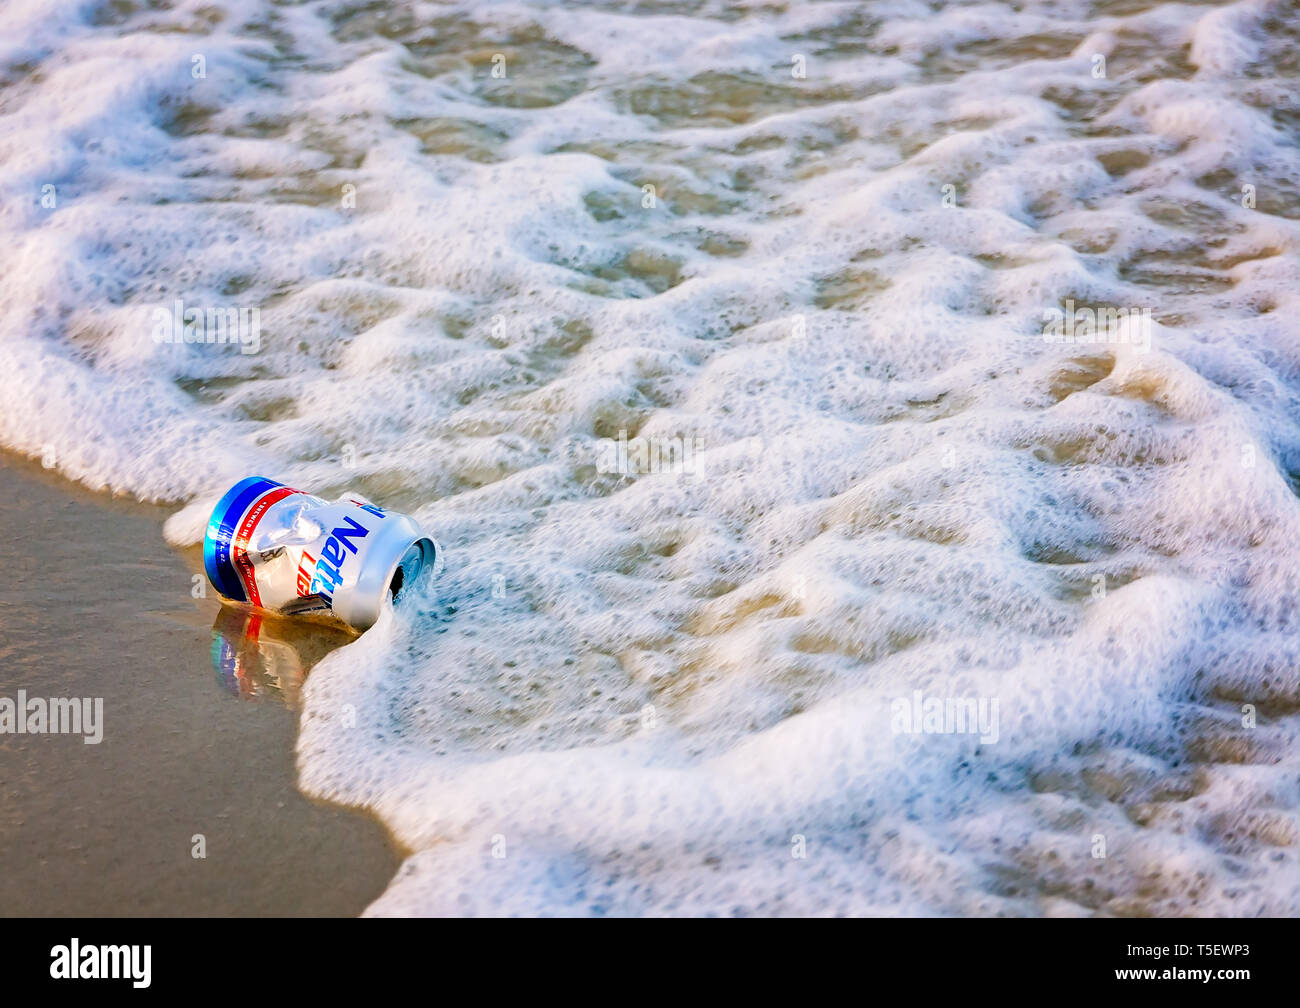 A Natural Light beer can lays on the beach, April 19, 2019, in Dauphin Island, Alabama. Most disposable cans like this are made from aluminum. - Stock Image